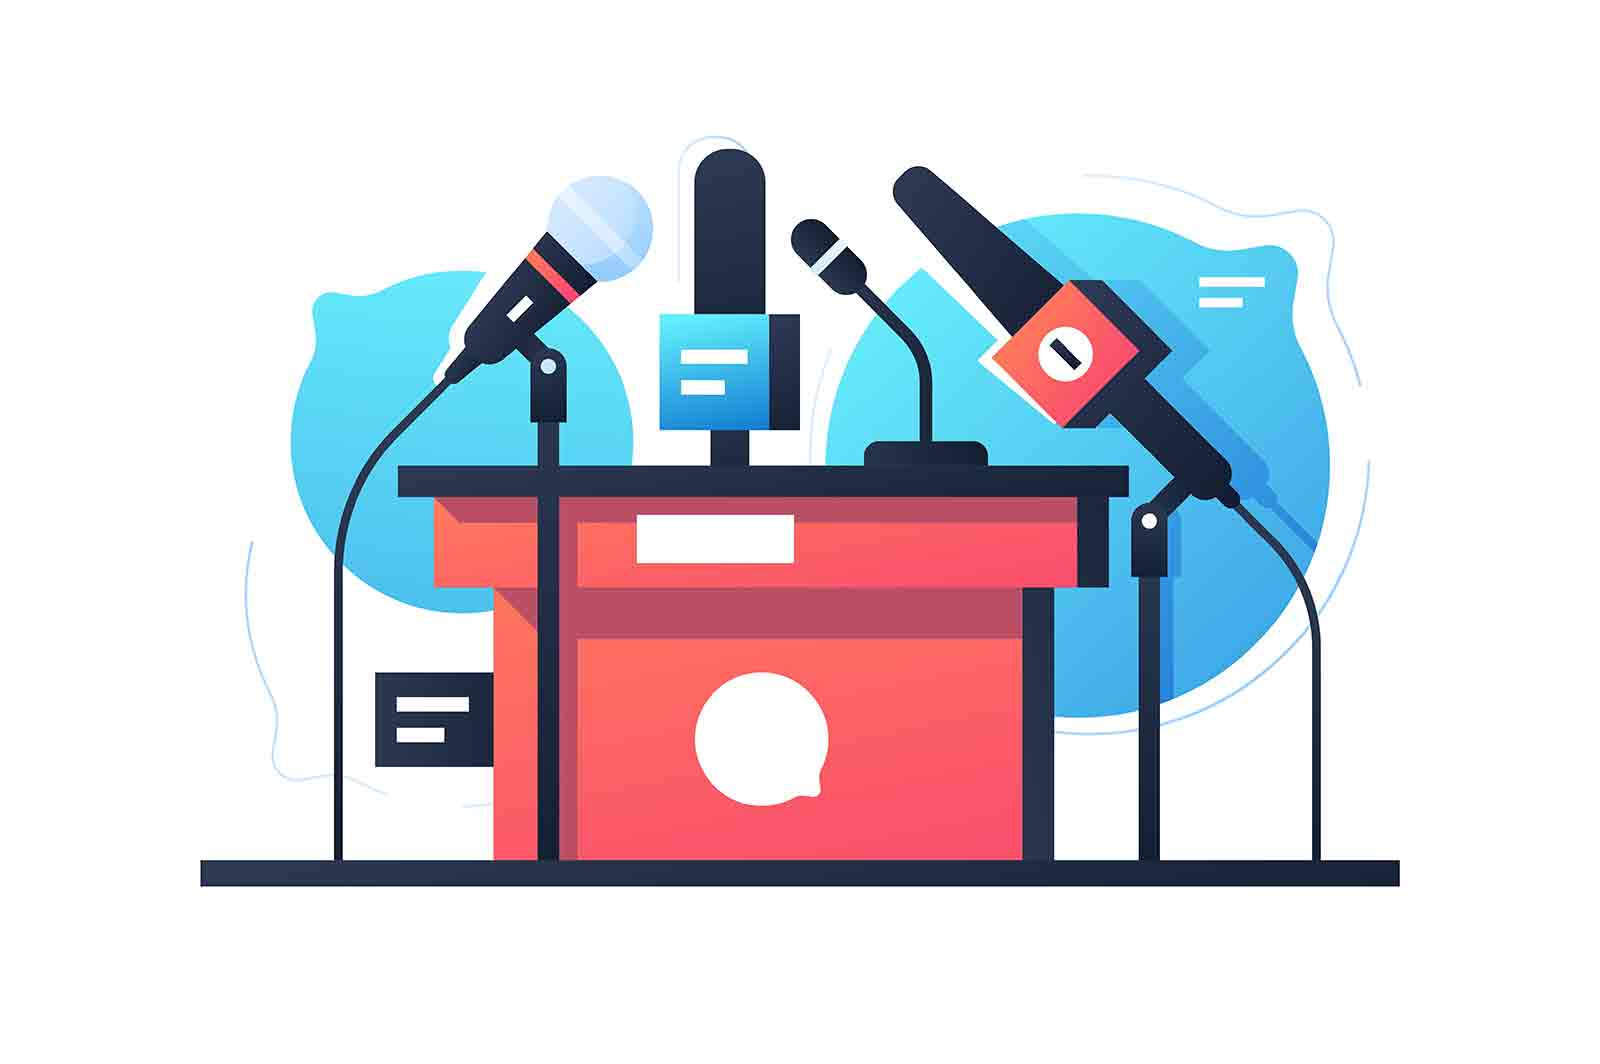 Empty debate and negotiation microphone stand icon. Isolated concept communication equipment on bubble speech background. Vector illustration.